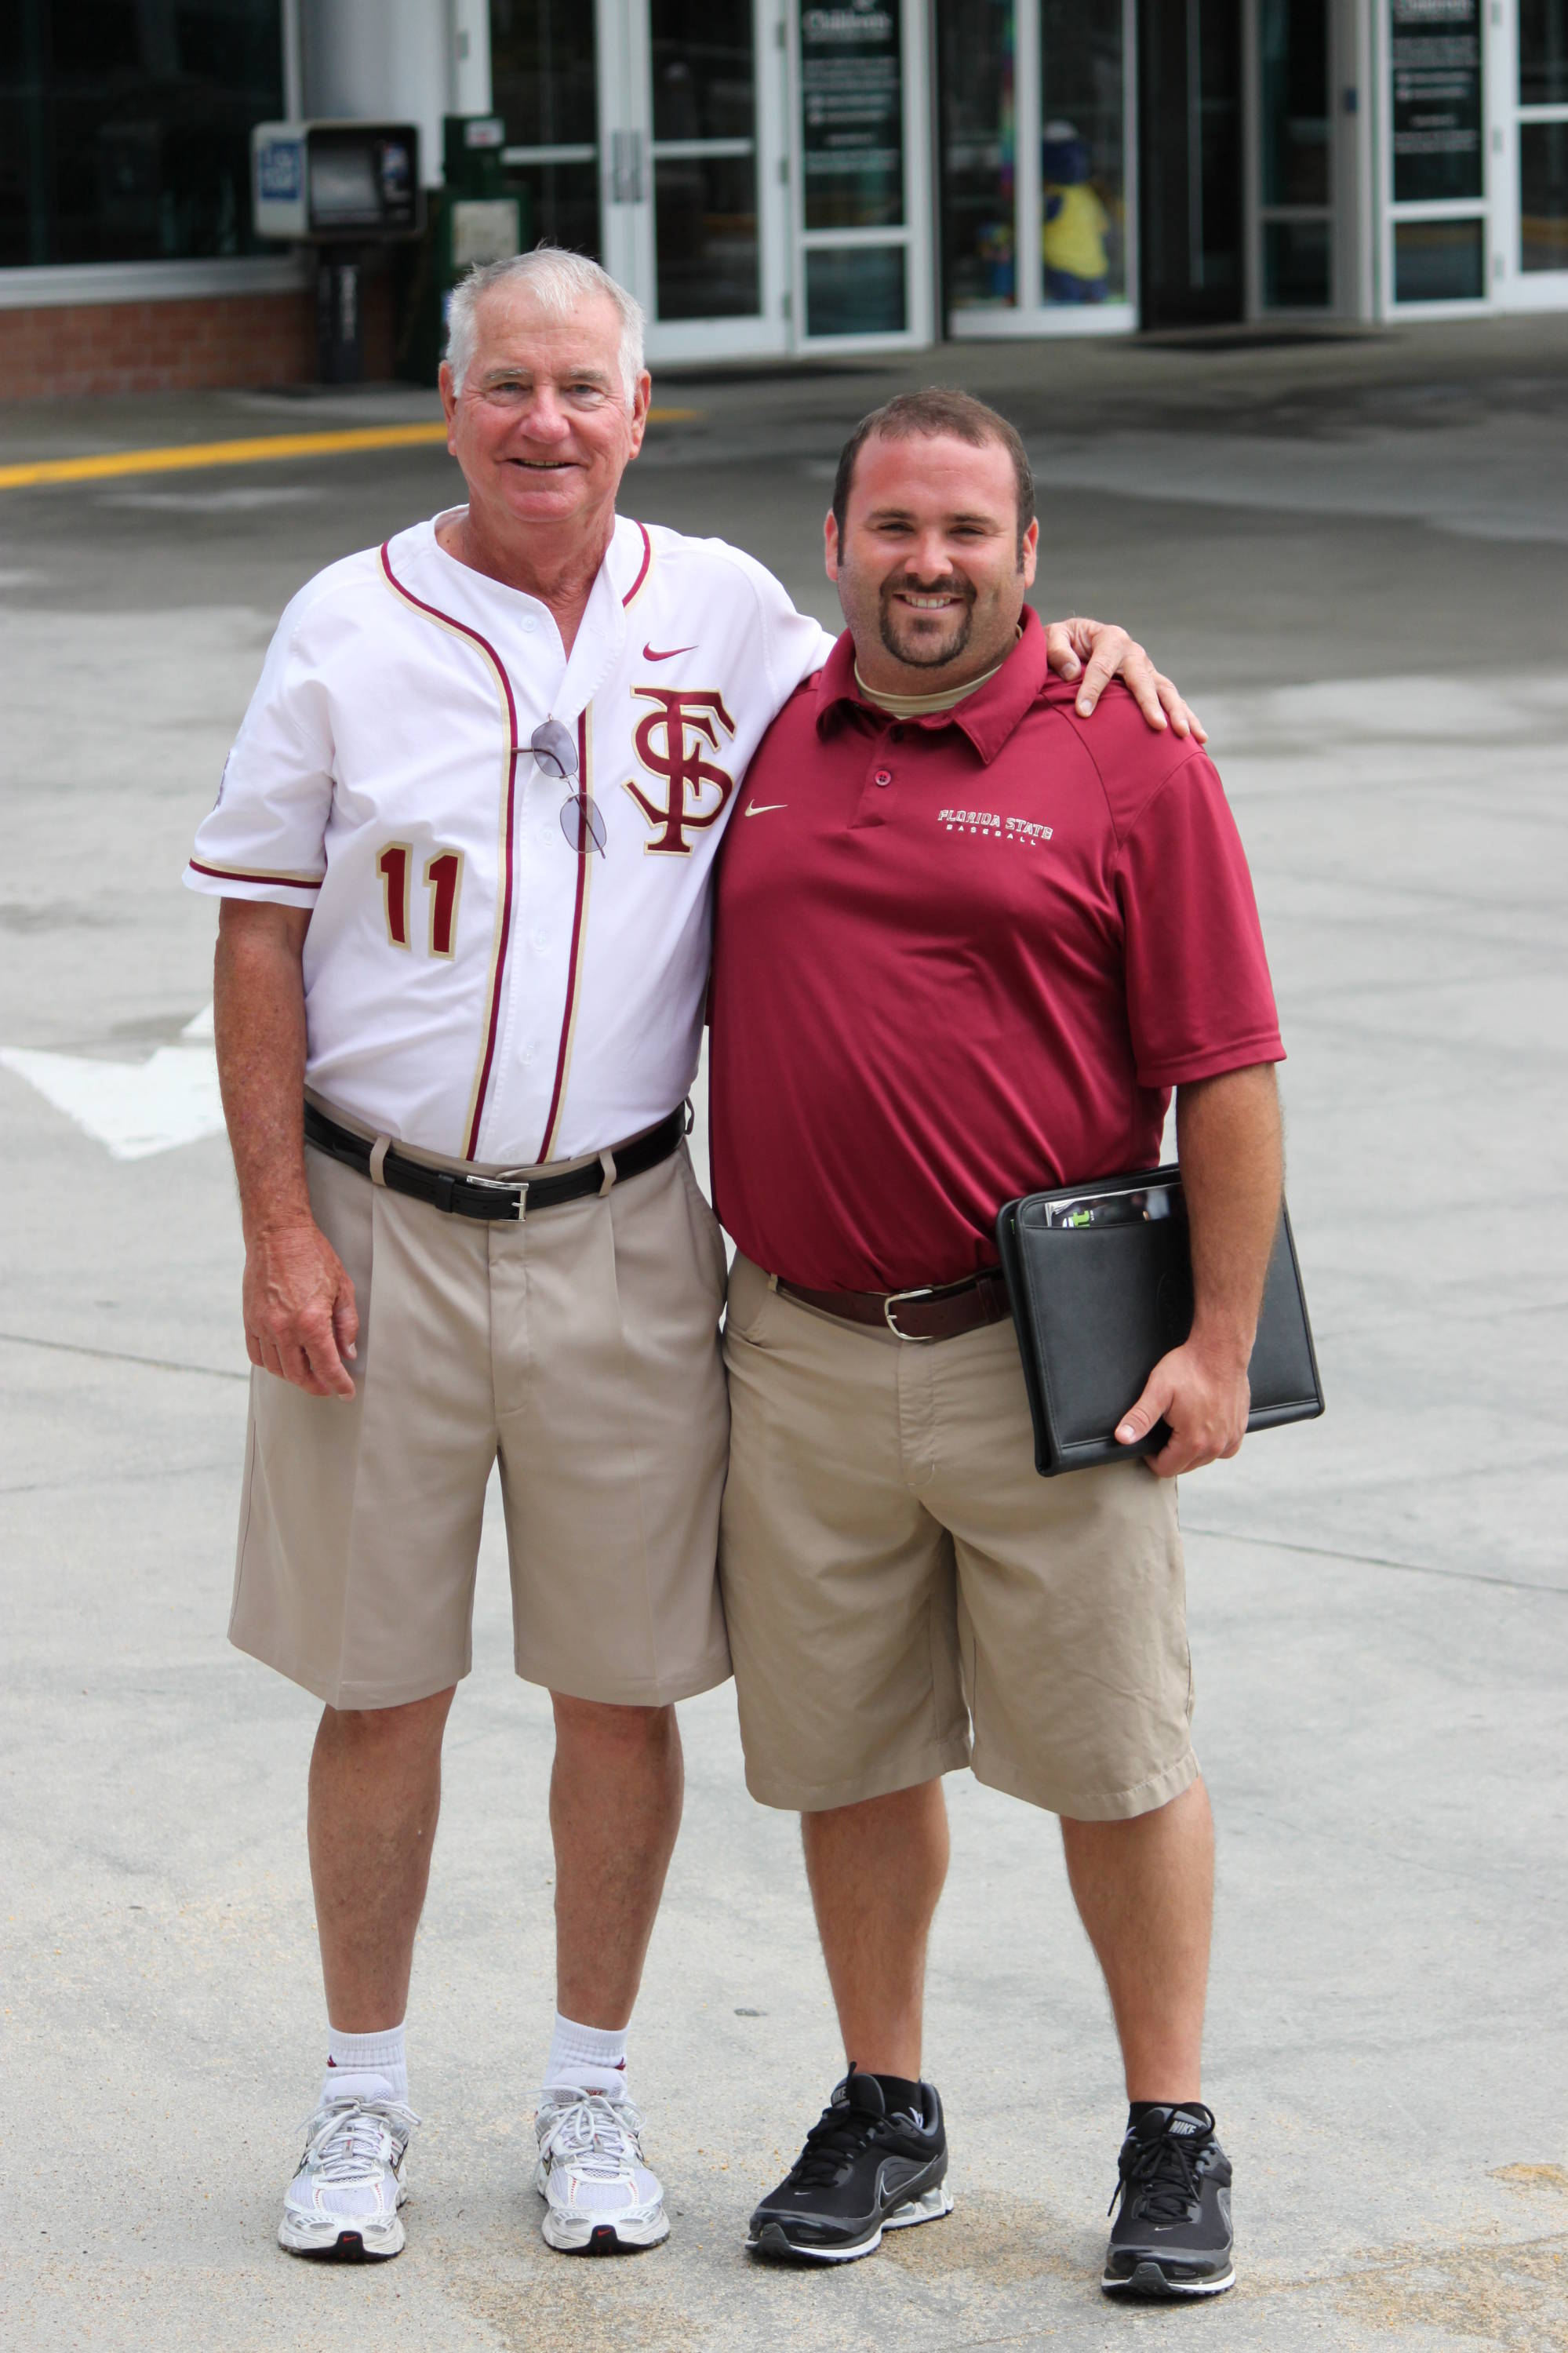 Head coach Mike Martin and Dane Smith outside the Children's Hospital